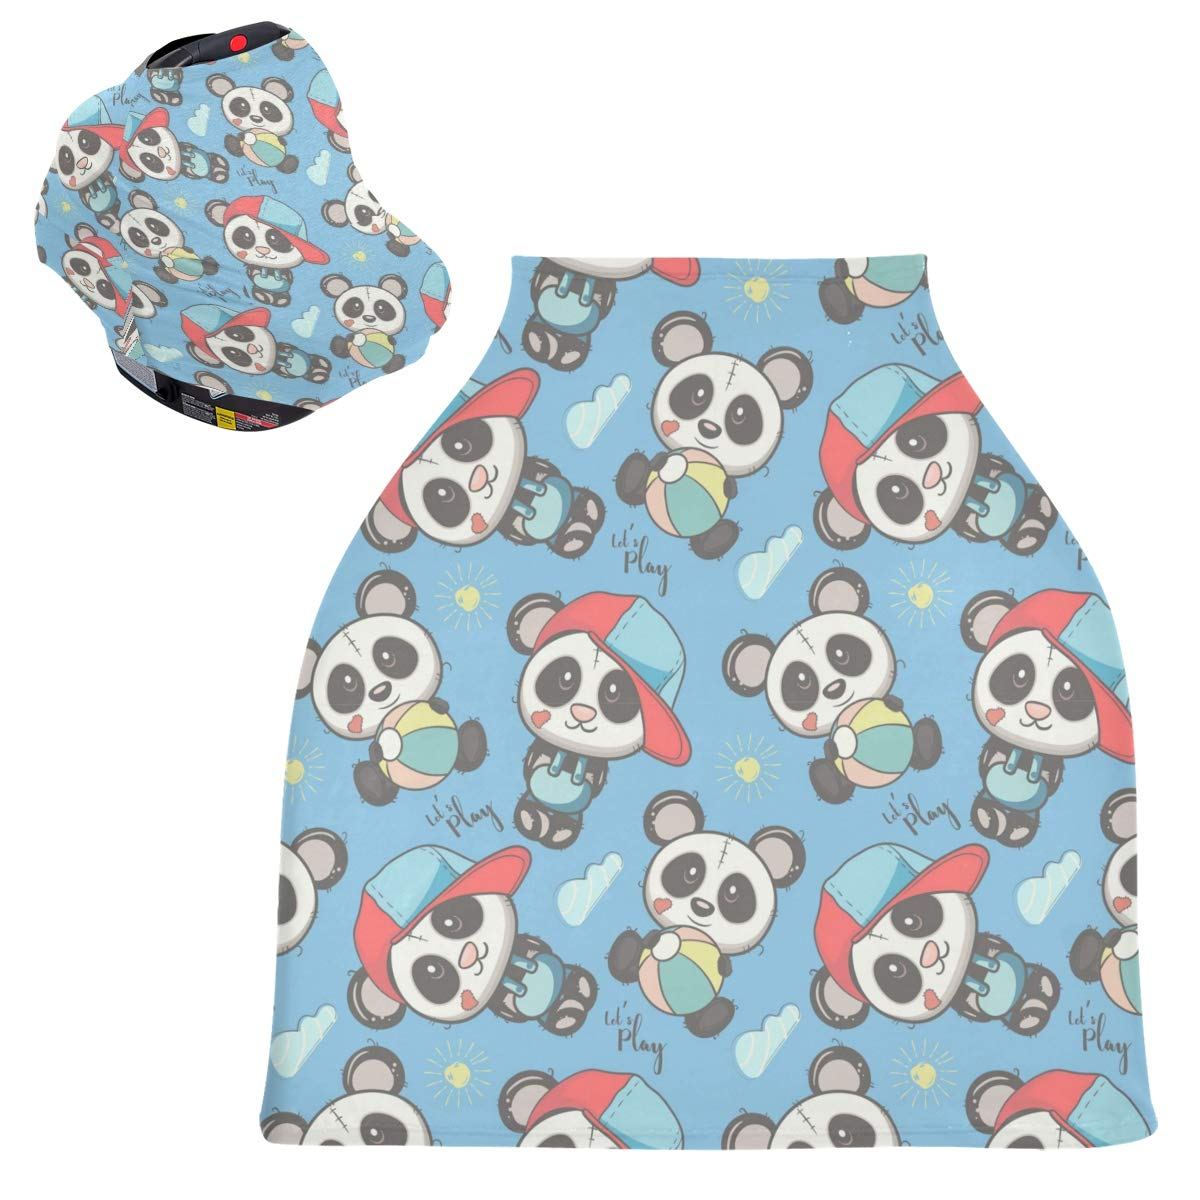 Blue Baby Panda Baby Car Seat Cover Canopy Stretchy Nursing Covers Breathable Windproof Winter Scarf for Infant Breastfeeding Boys Girls